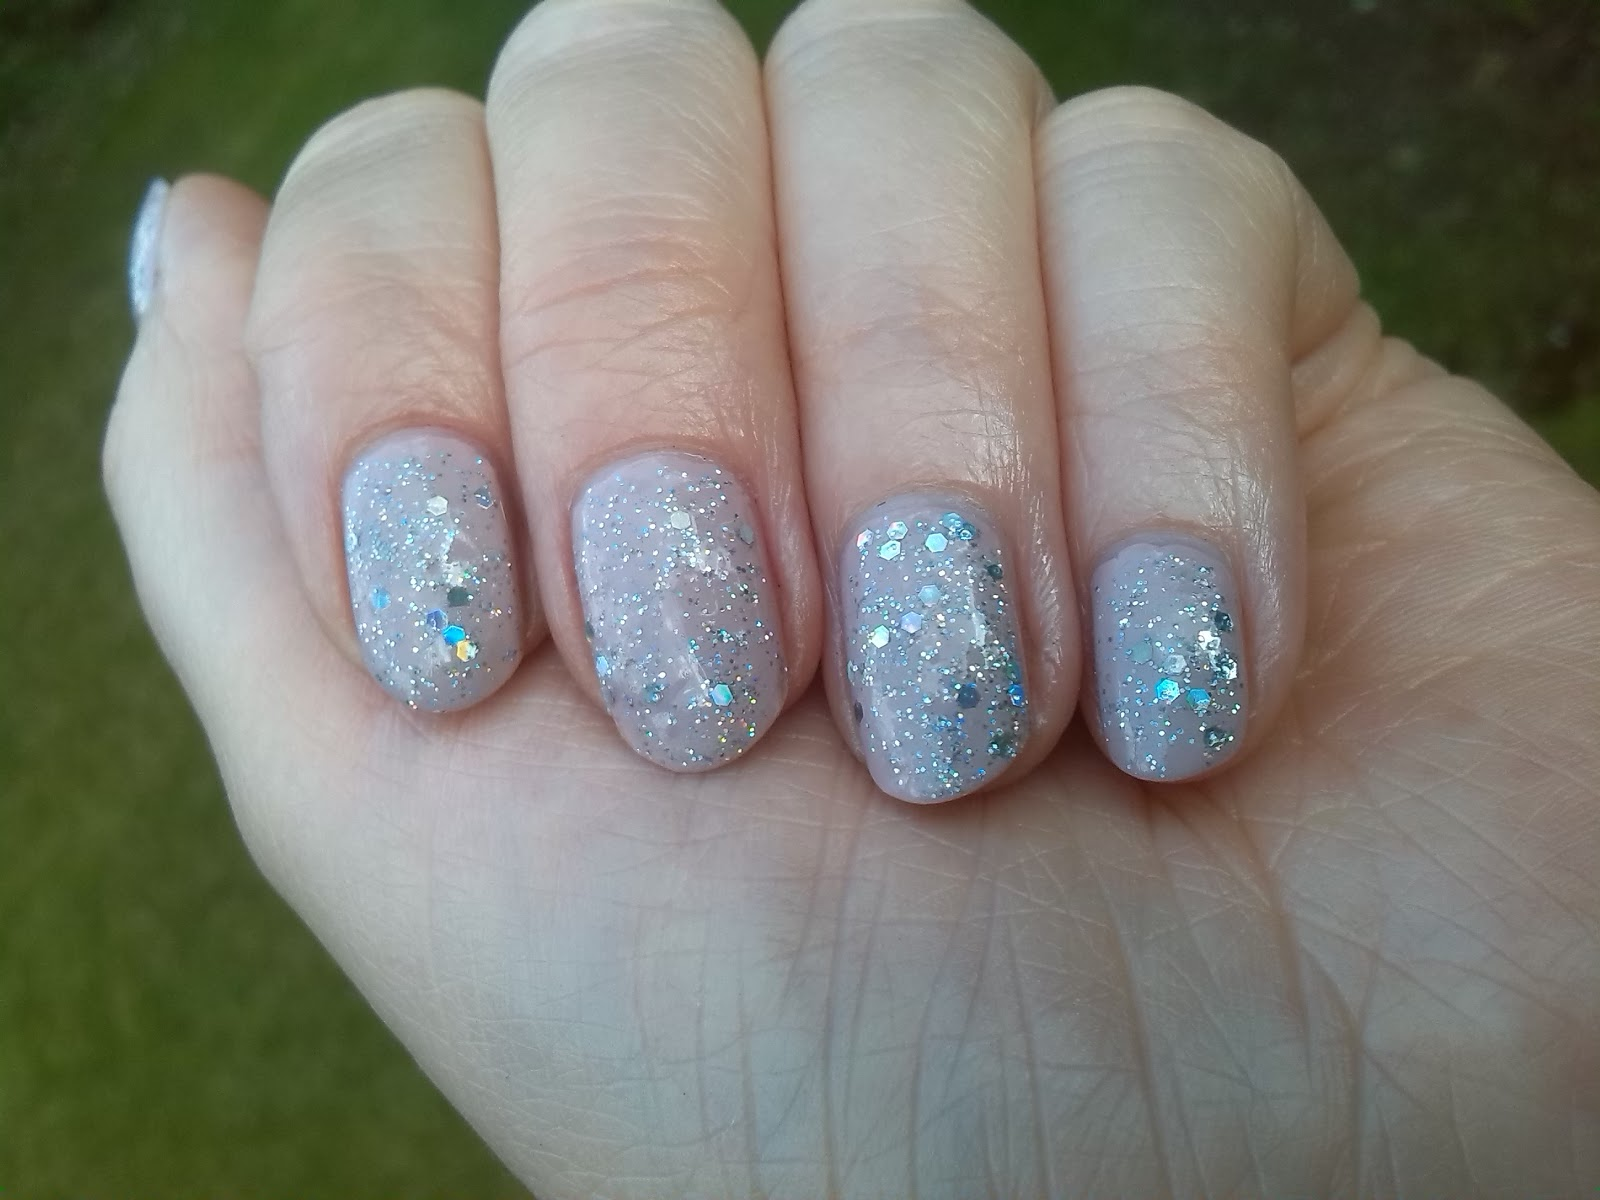 Nails Inc George Street and OPI Servin' Up Sparkle